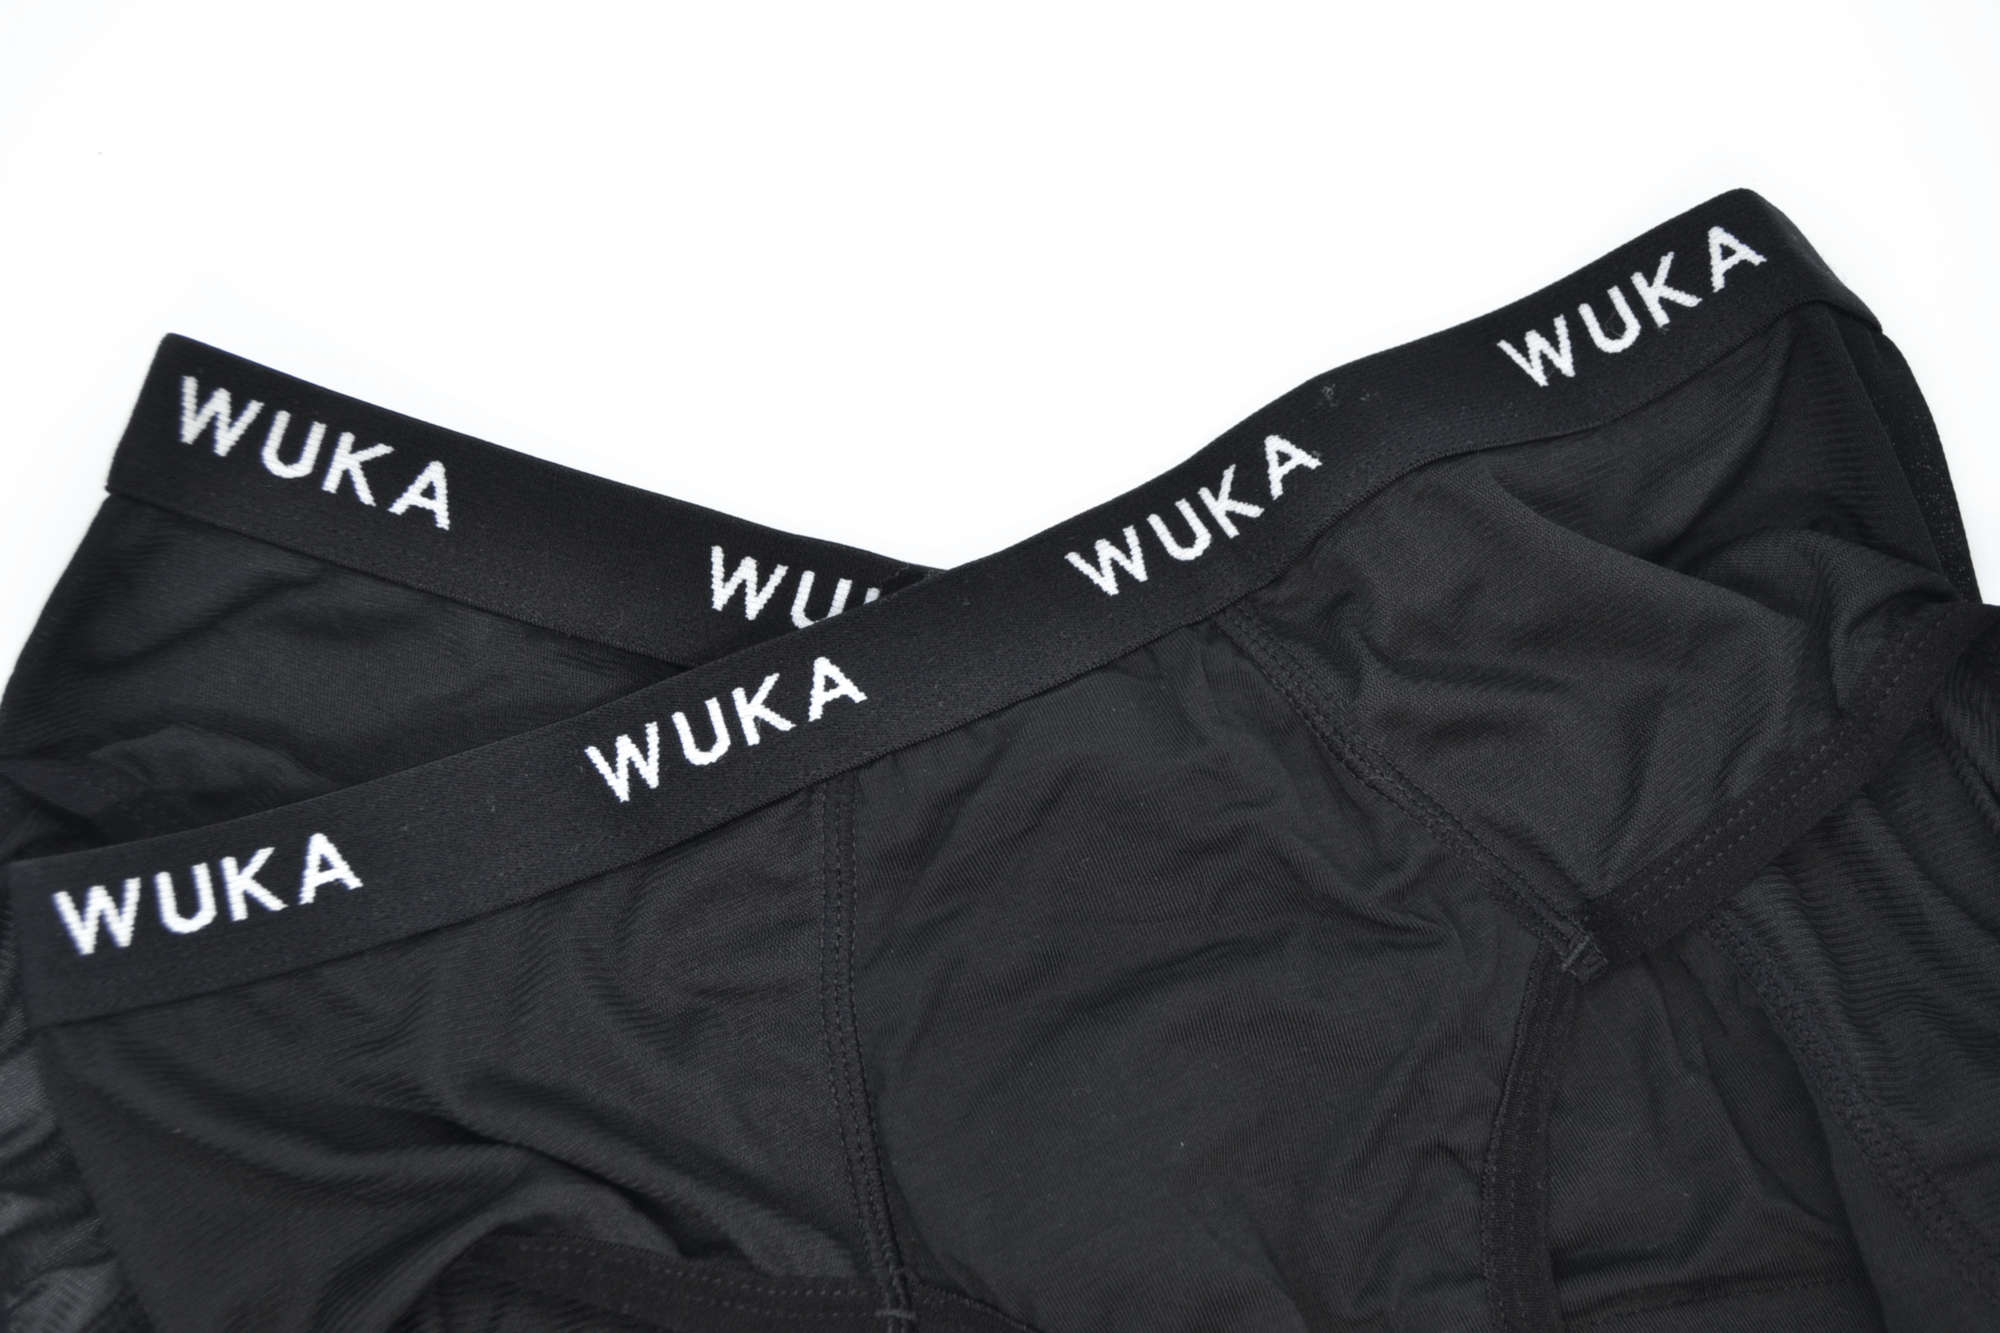 WUKA period pants - life changing!